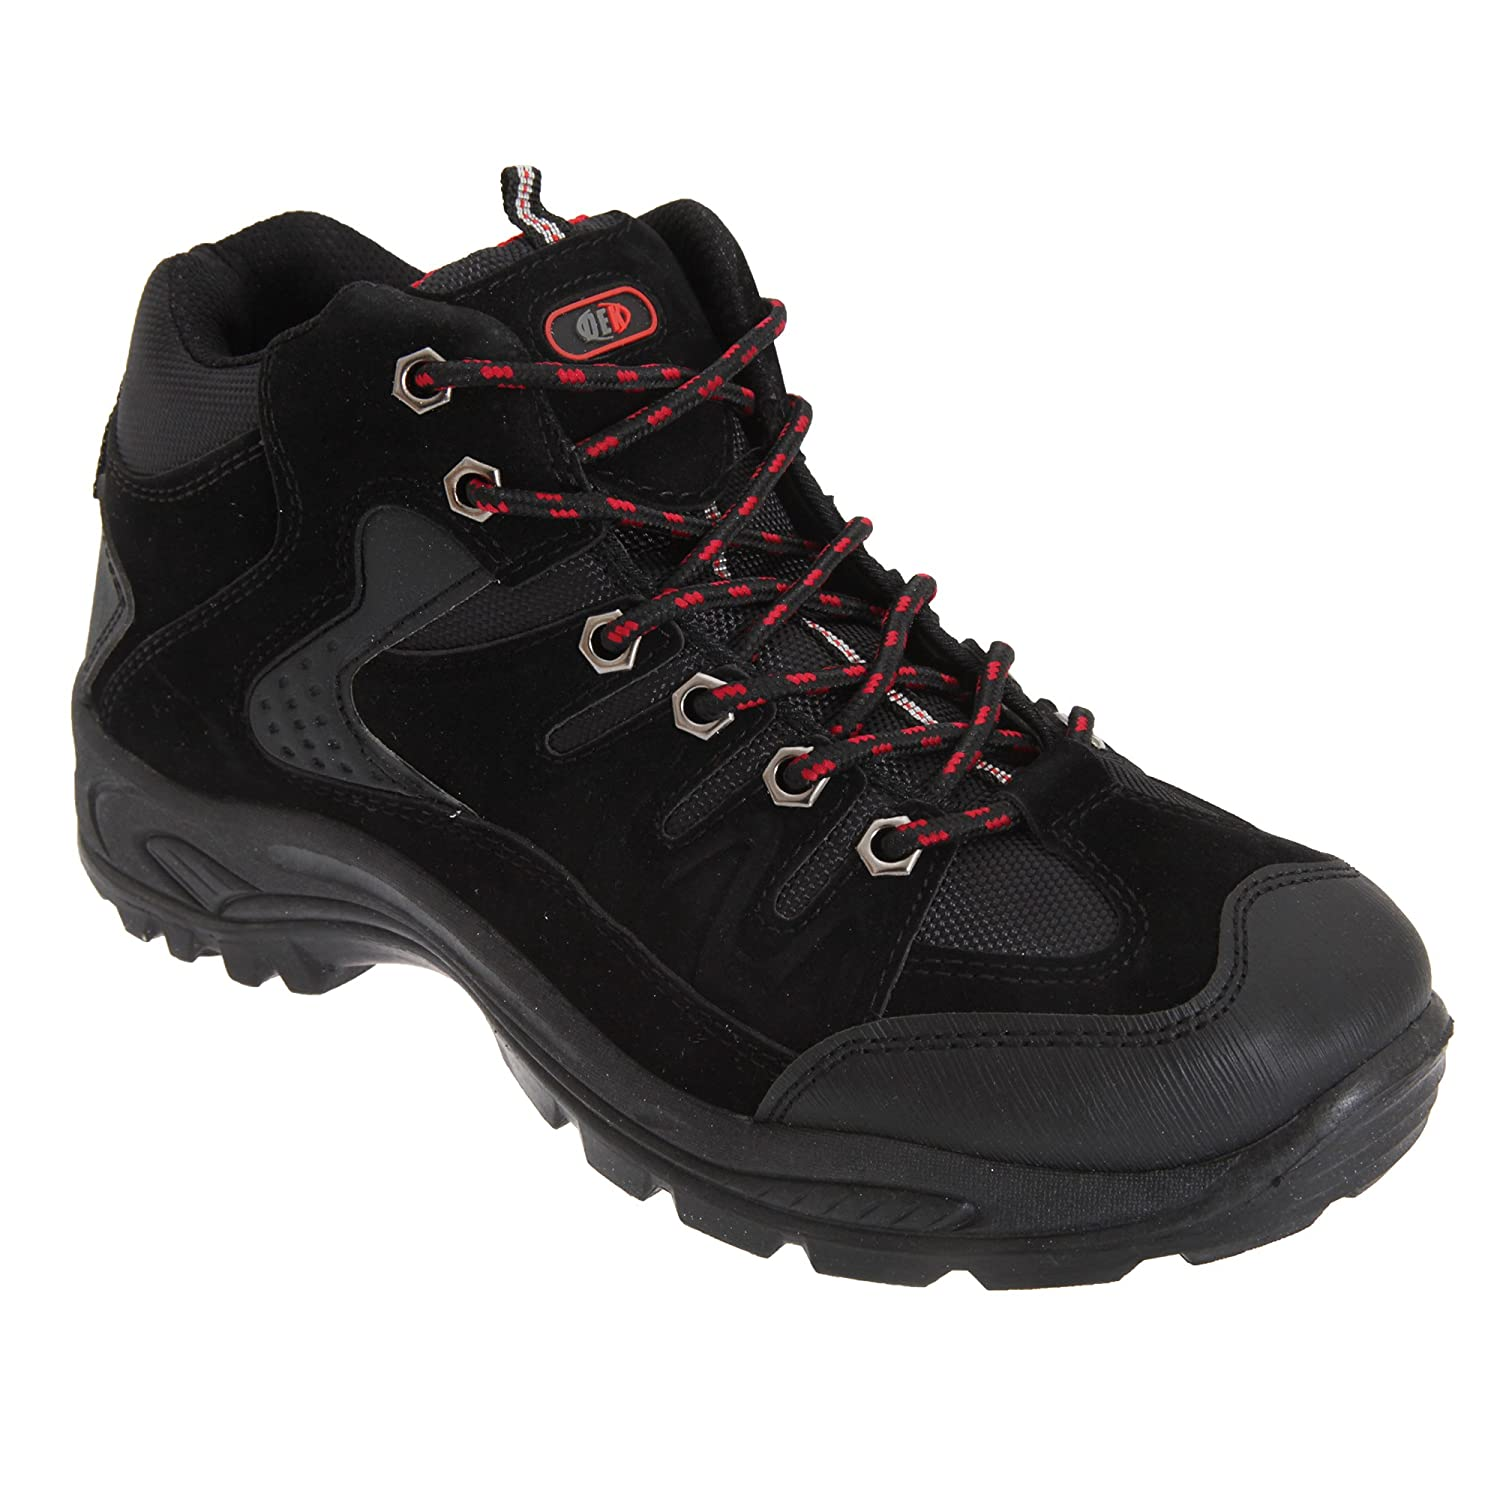 Dek Mens Ontario Lace-Up Hiking Trail Boots